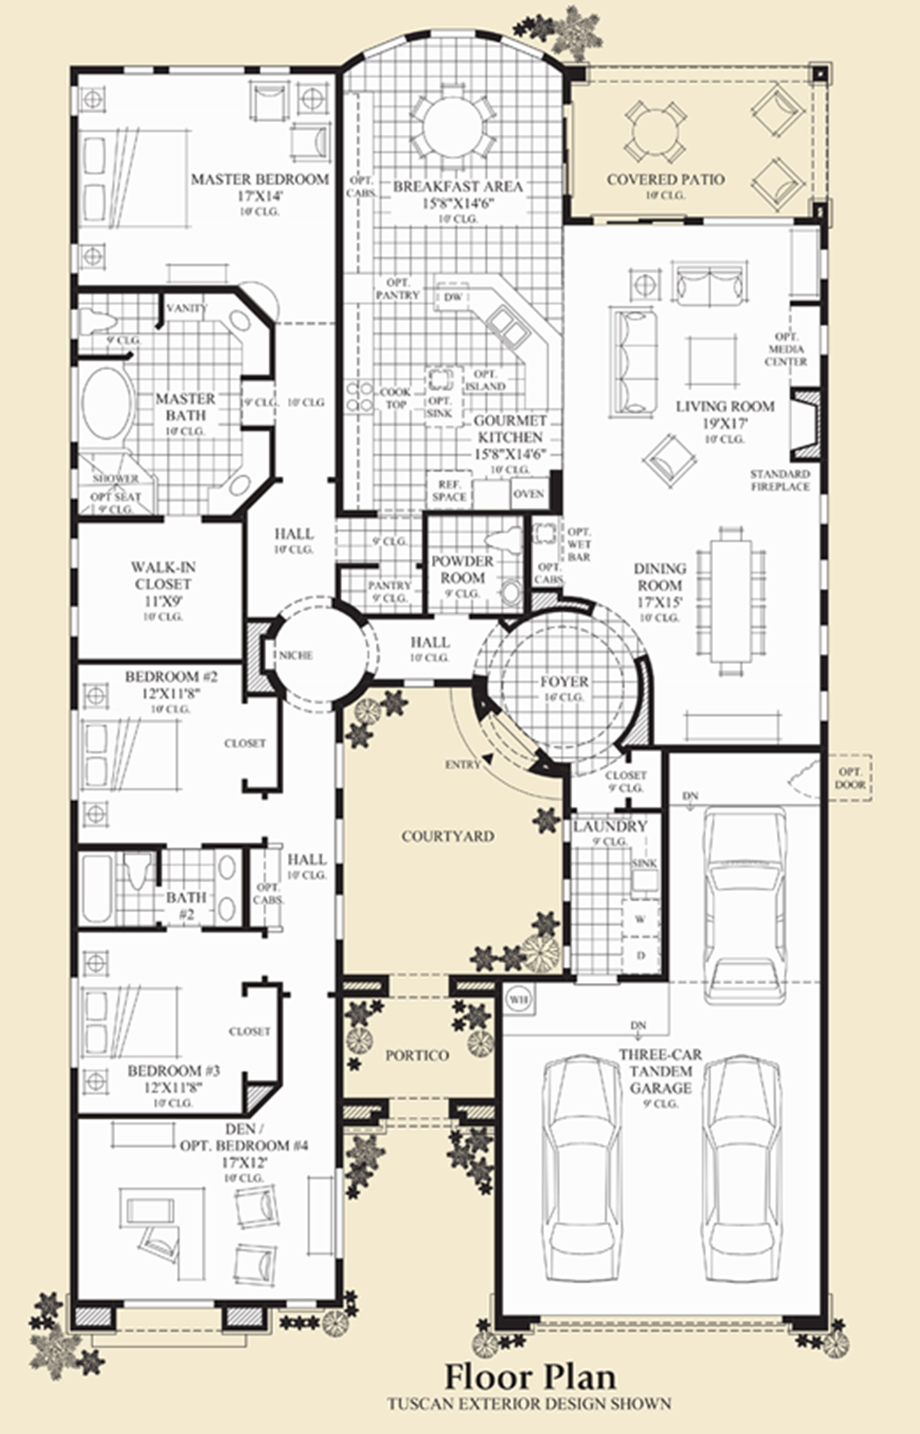 Court Yard Offers More Protection And Security For Front Door Den Or Office As Front Room Pr Courtyard House Plans House Layout Plans Home Design Floor Plans